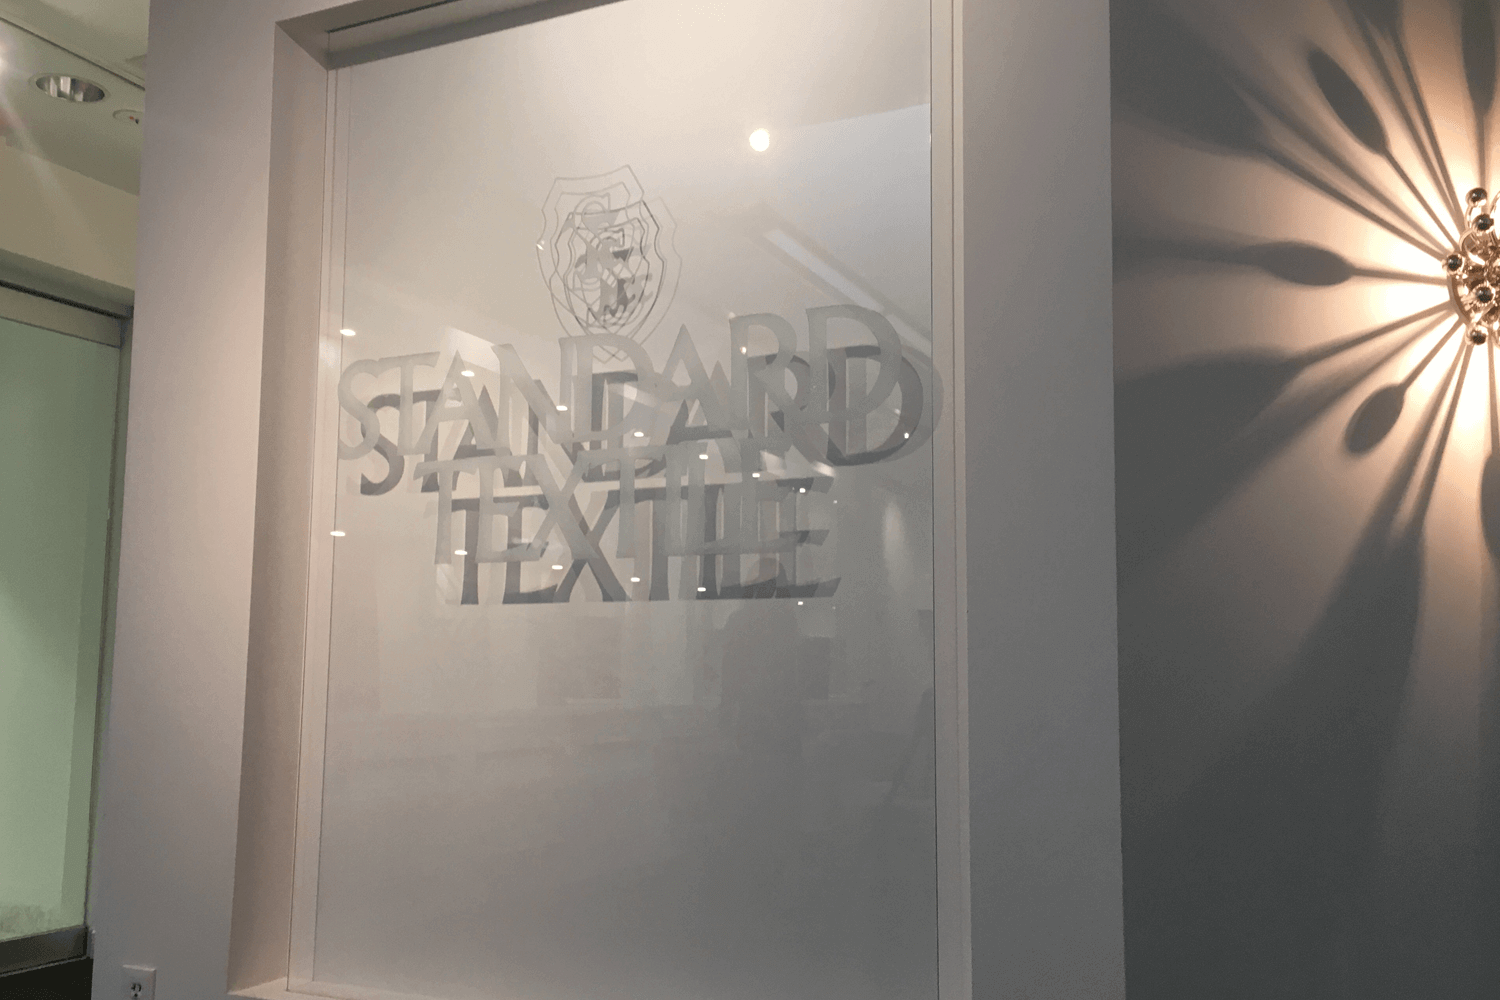 Standard Textile joins Cerkl as partner.